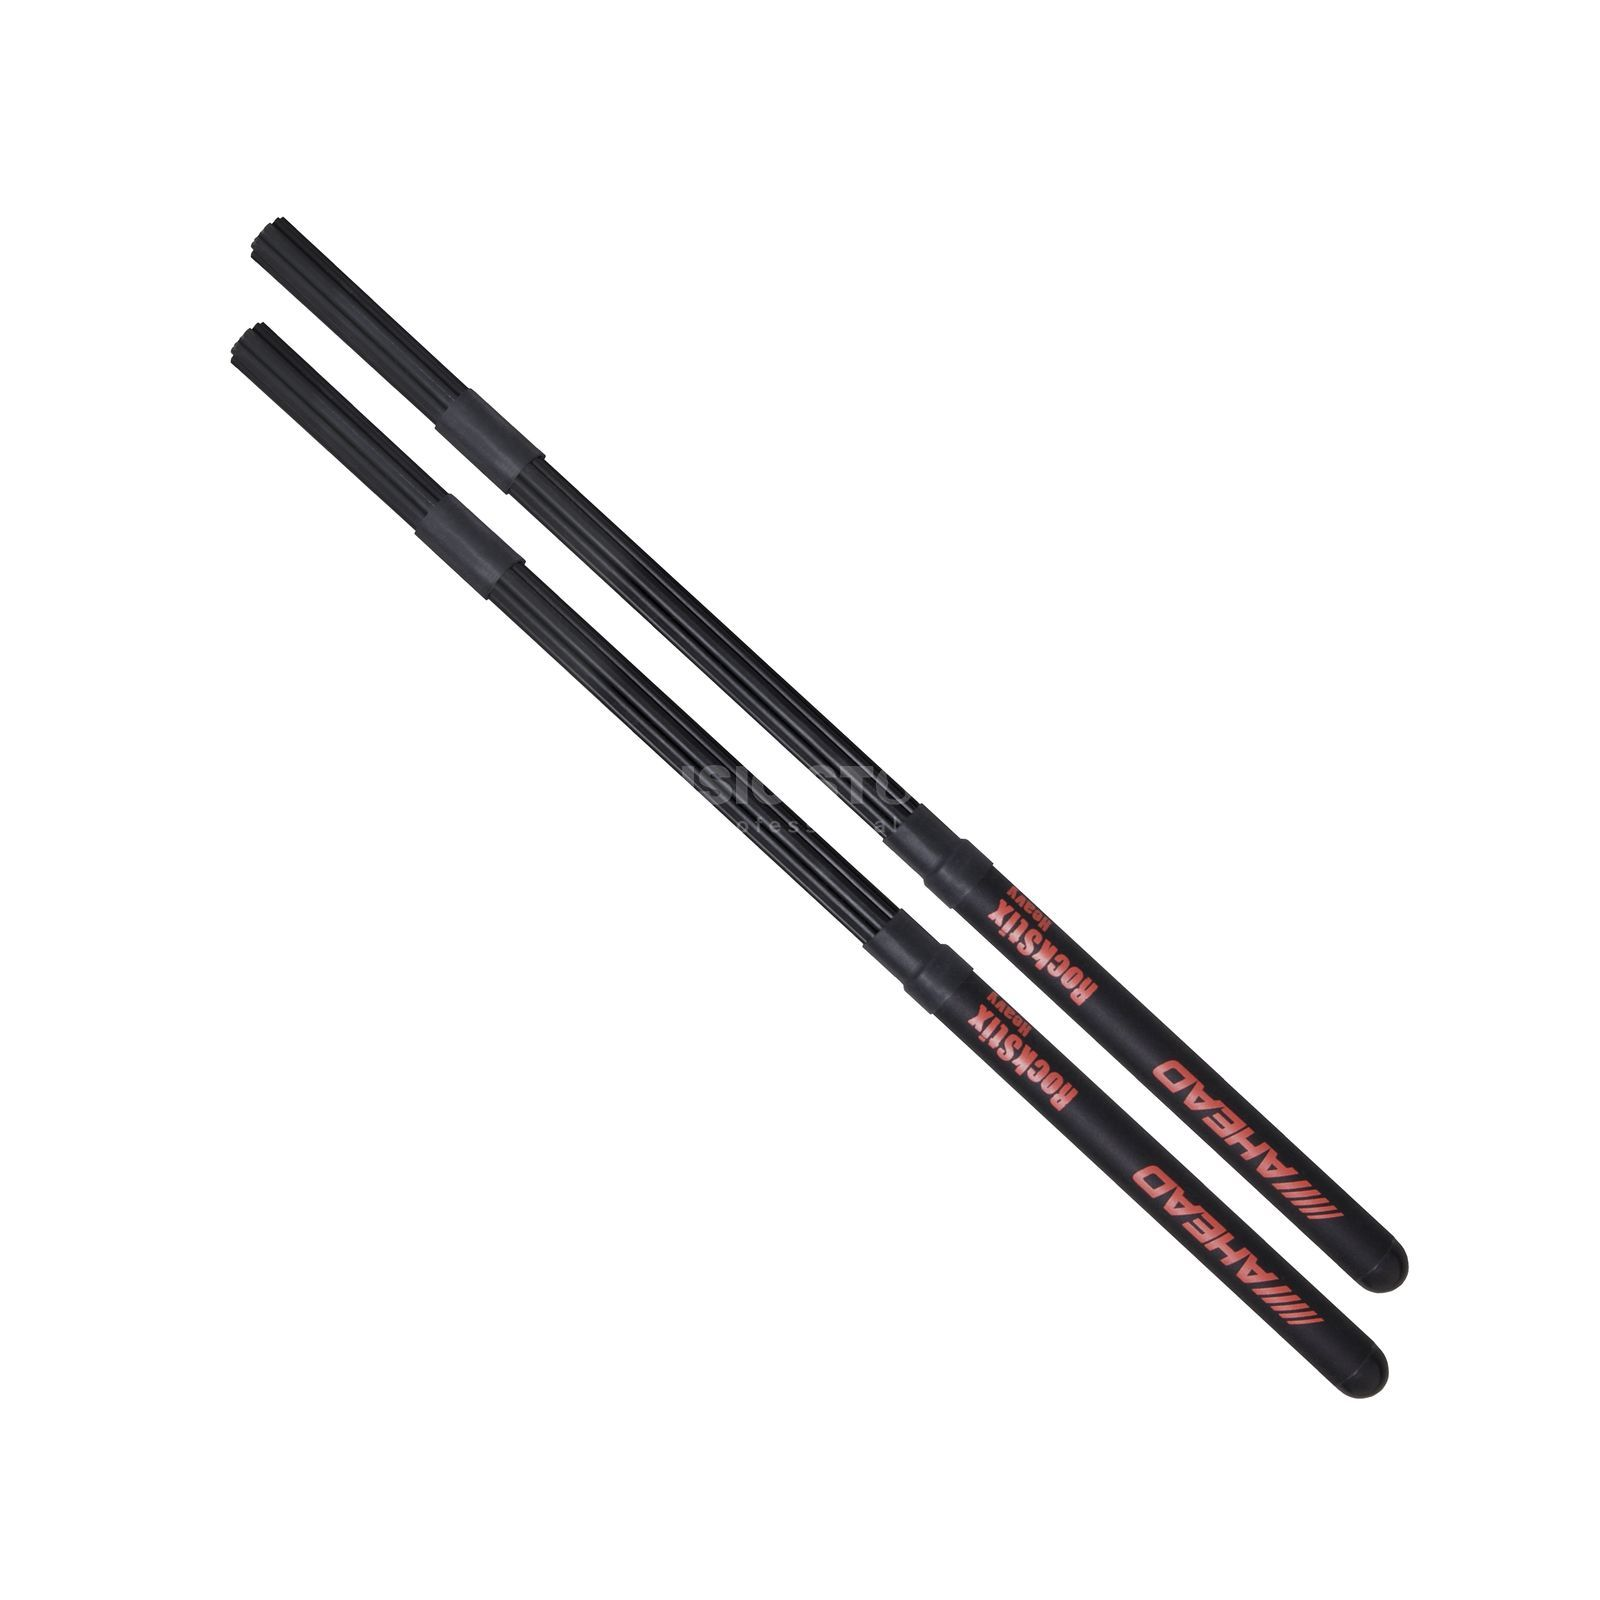 Ahead Sticks RockStix Heavy 11 Rod Bristle RSH Broom Produktbillede